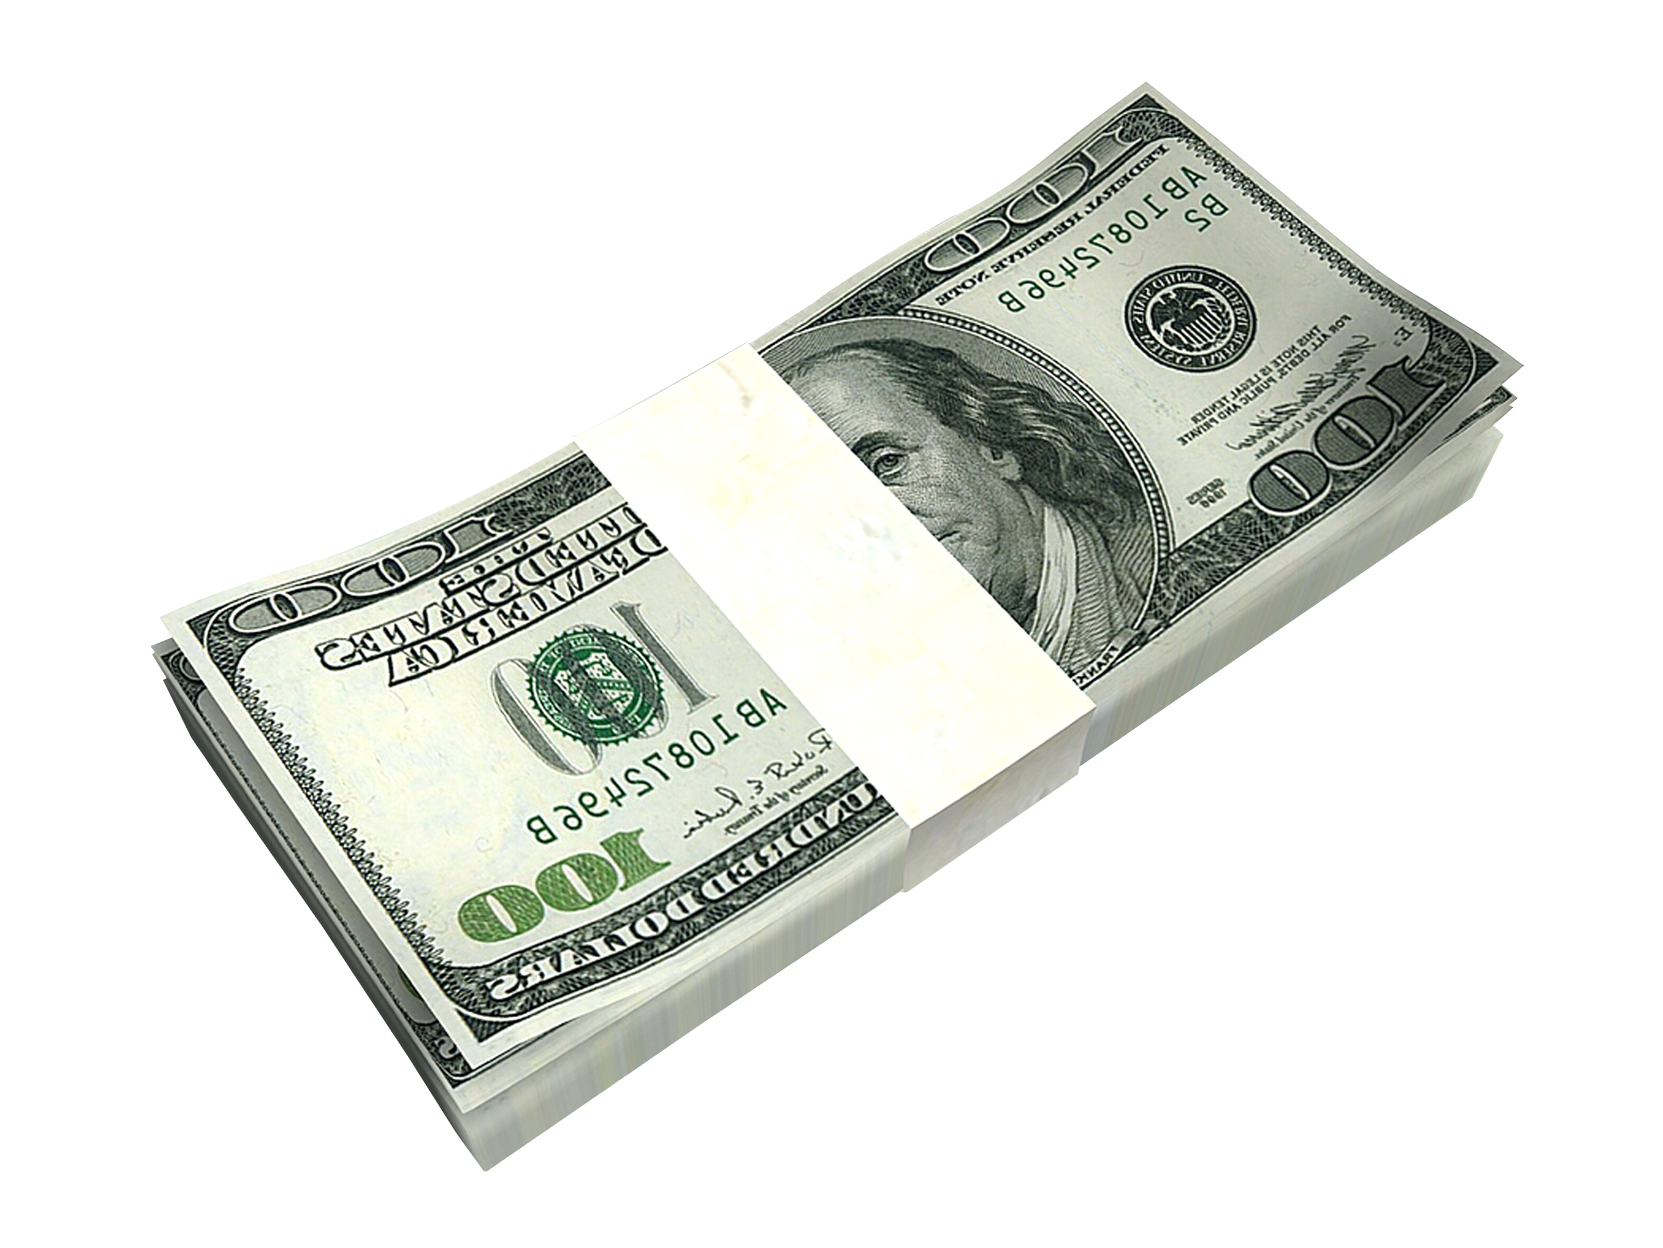 United Banknote Money Bill Dollar One-Dollar Cash PNG Image